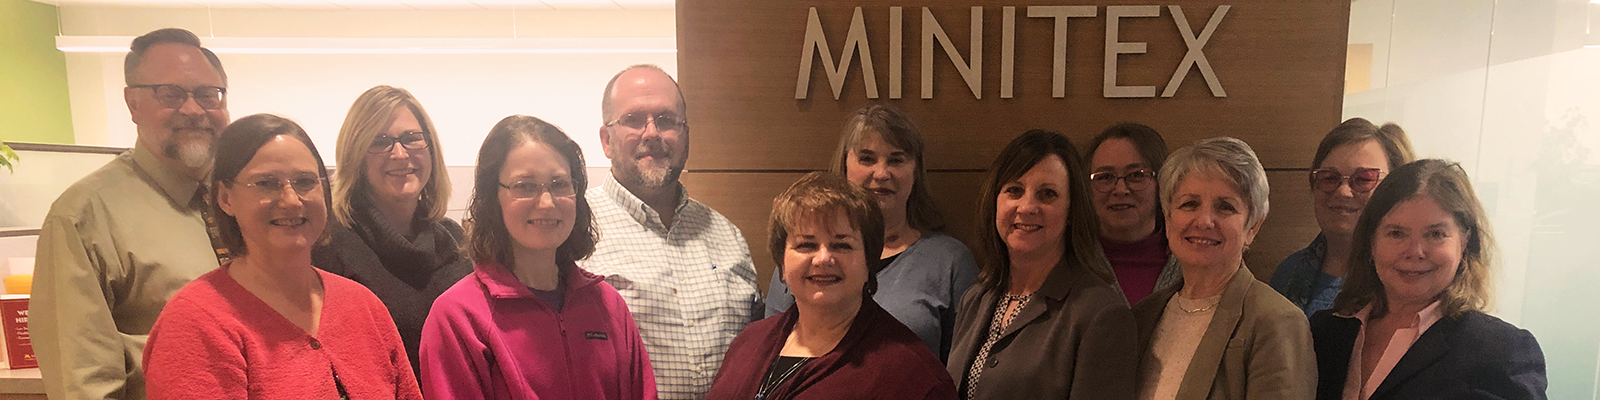 A photo of the Minitex Policy Advisory Council